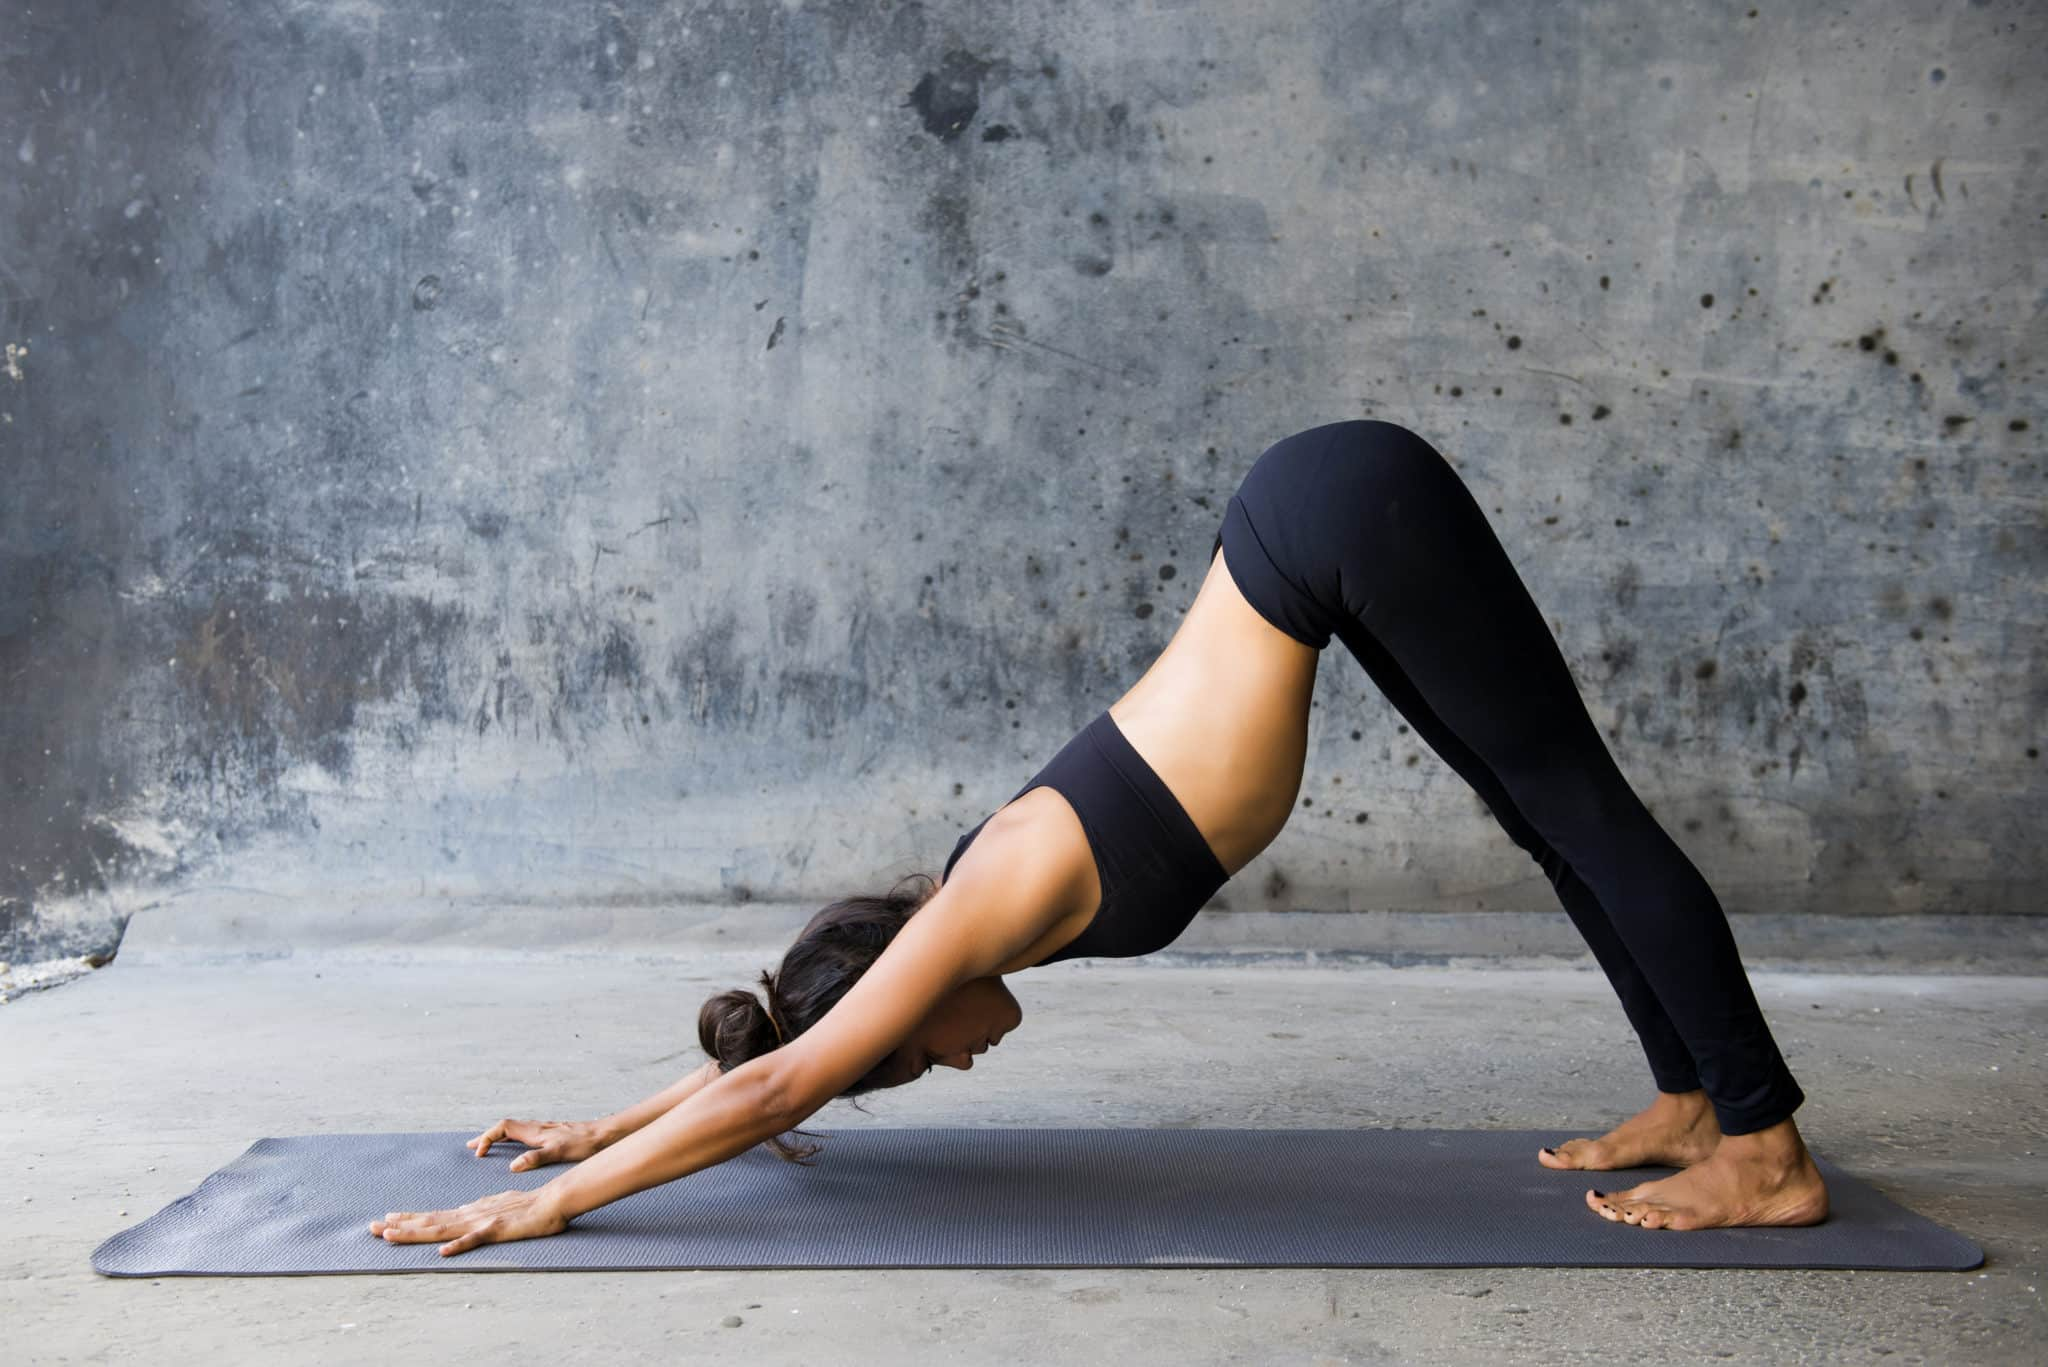 Learn how poses like downward dog can help reduce back pain naturally.